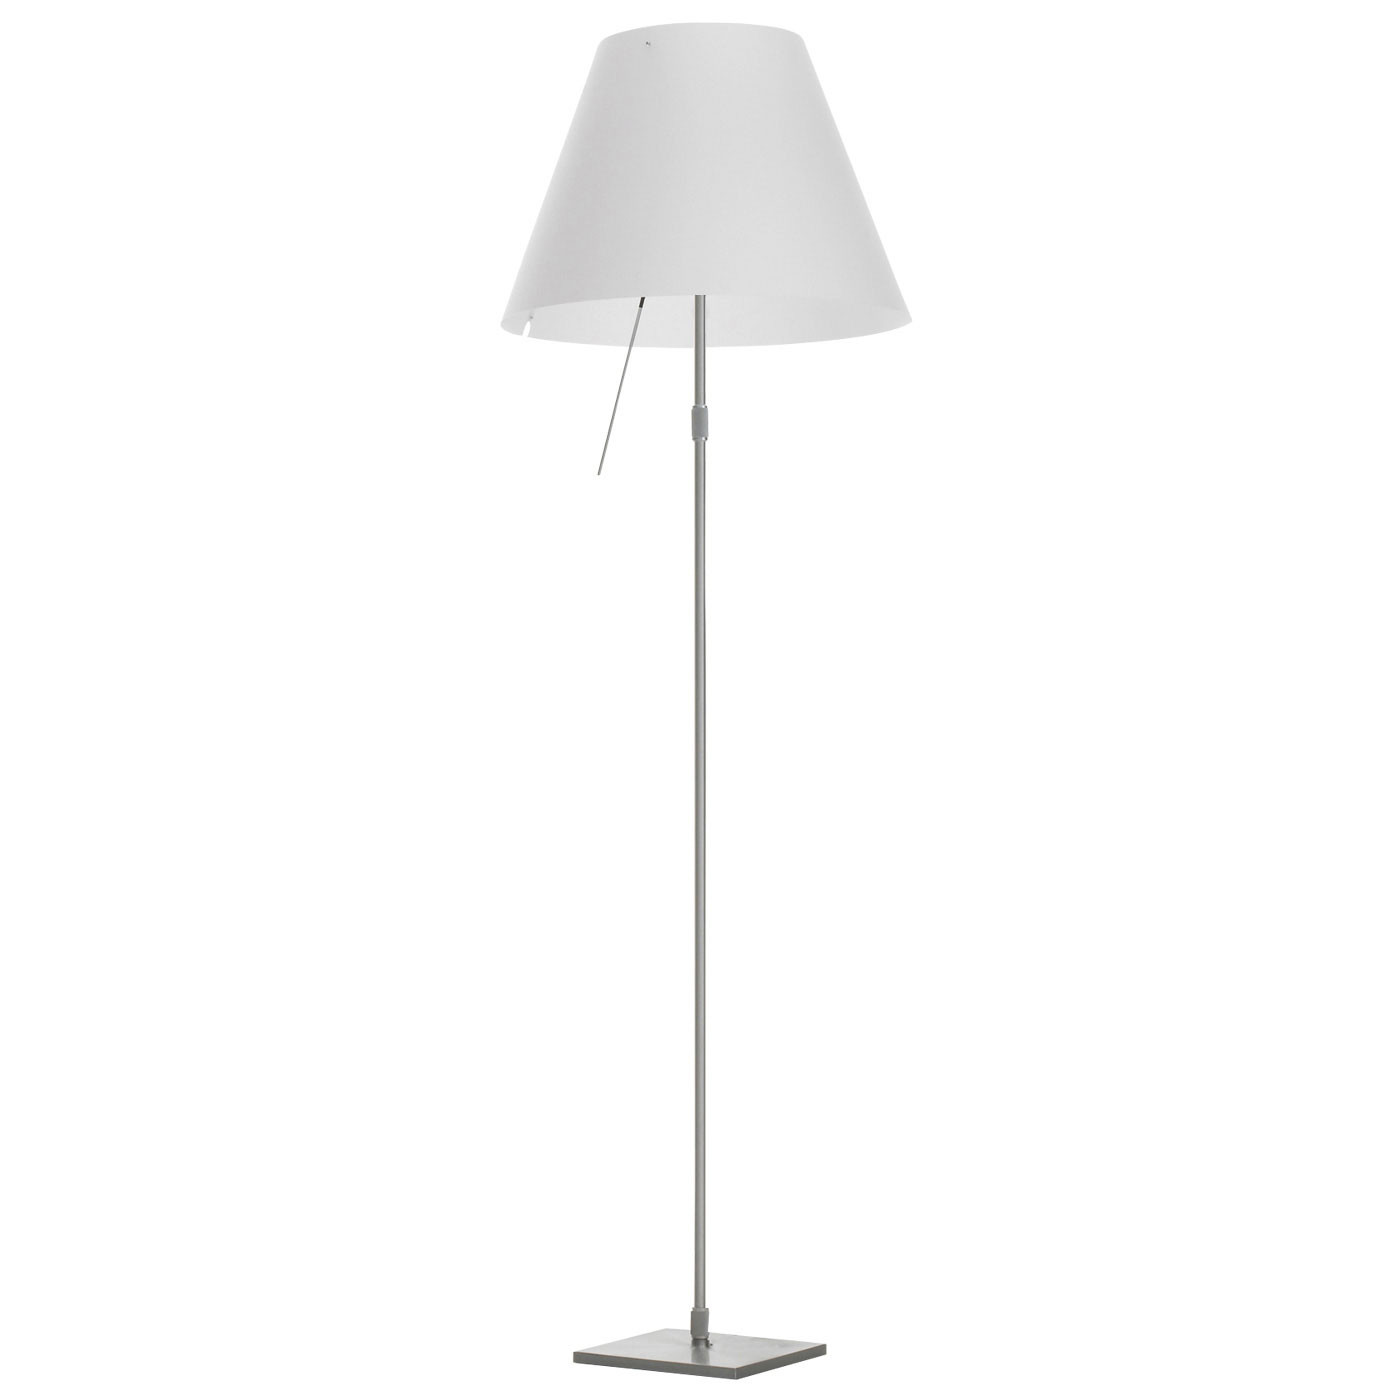 Luceplan Costanza Terra Alu with Dimmer